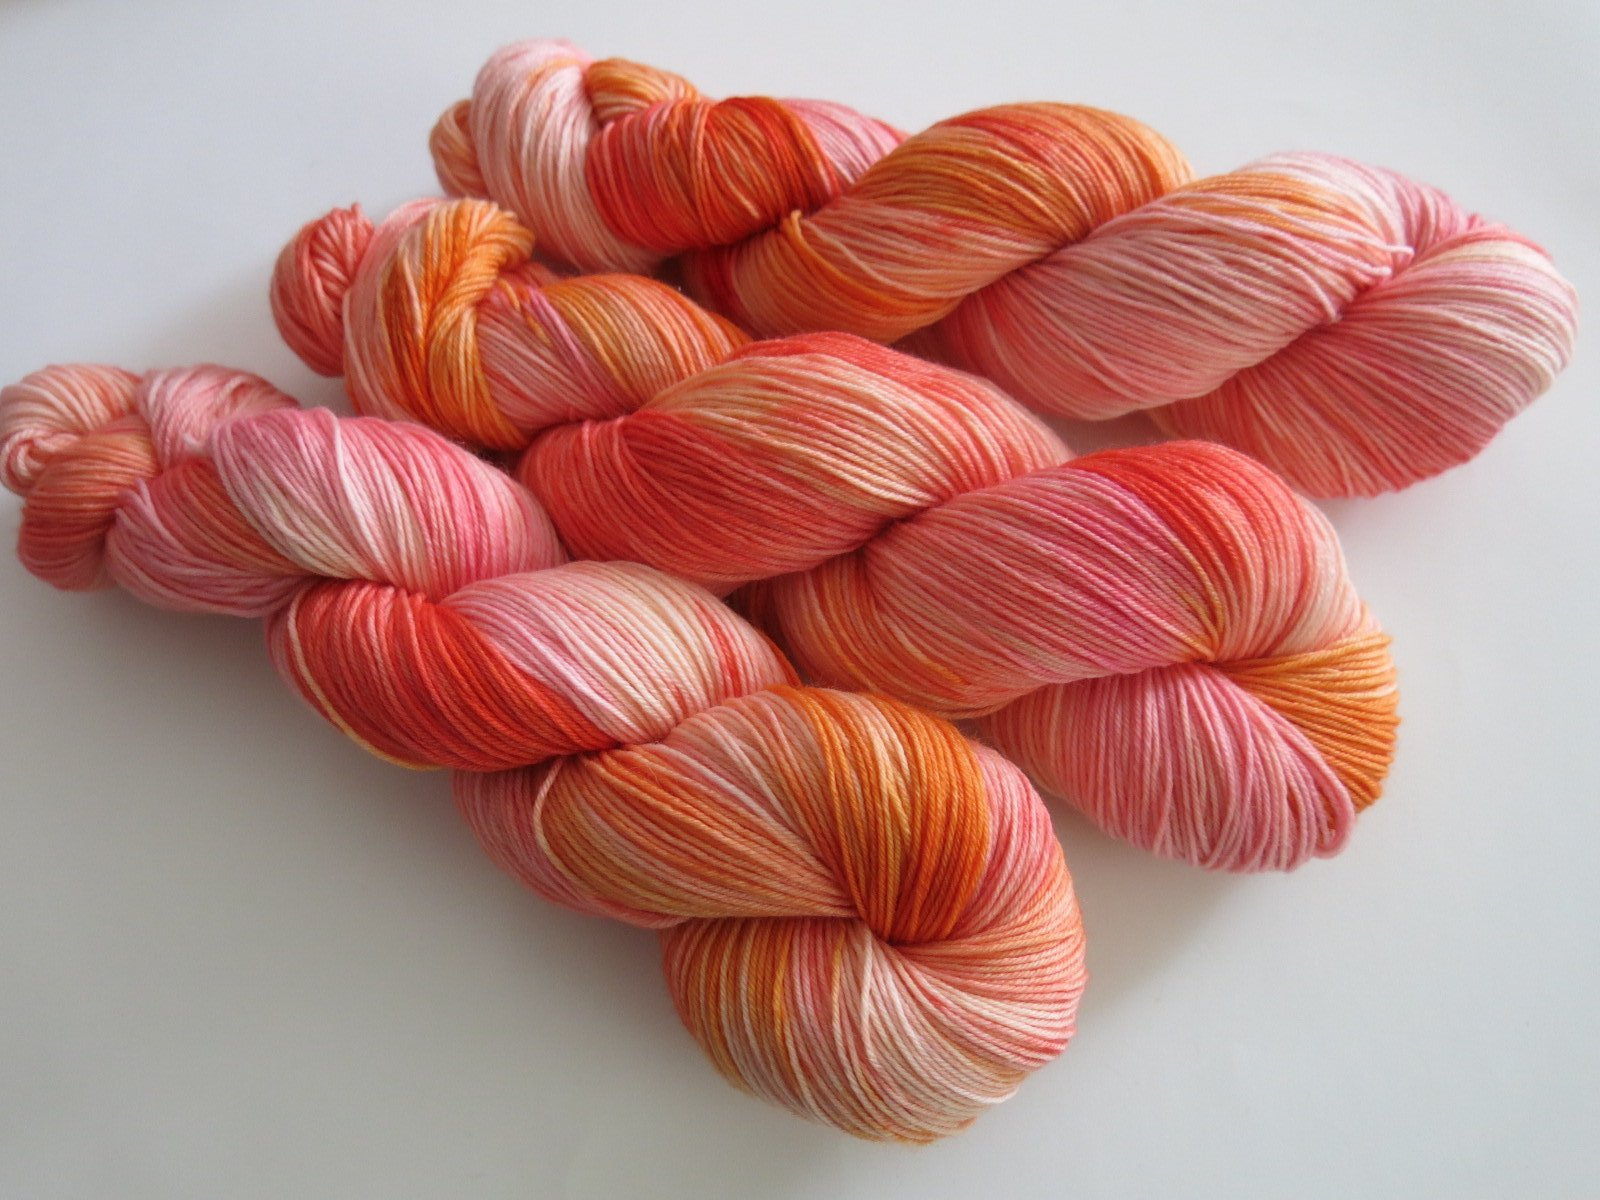 sunset coloured merino yarn for knitting socks and shawls